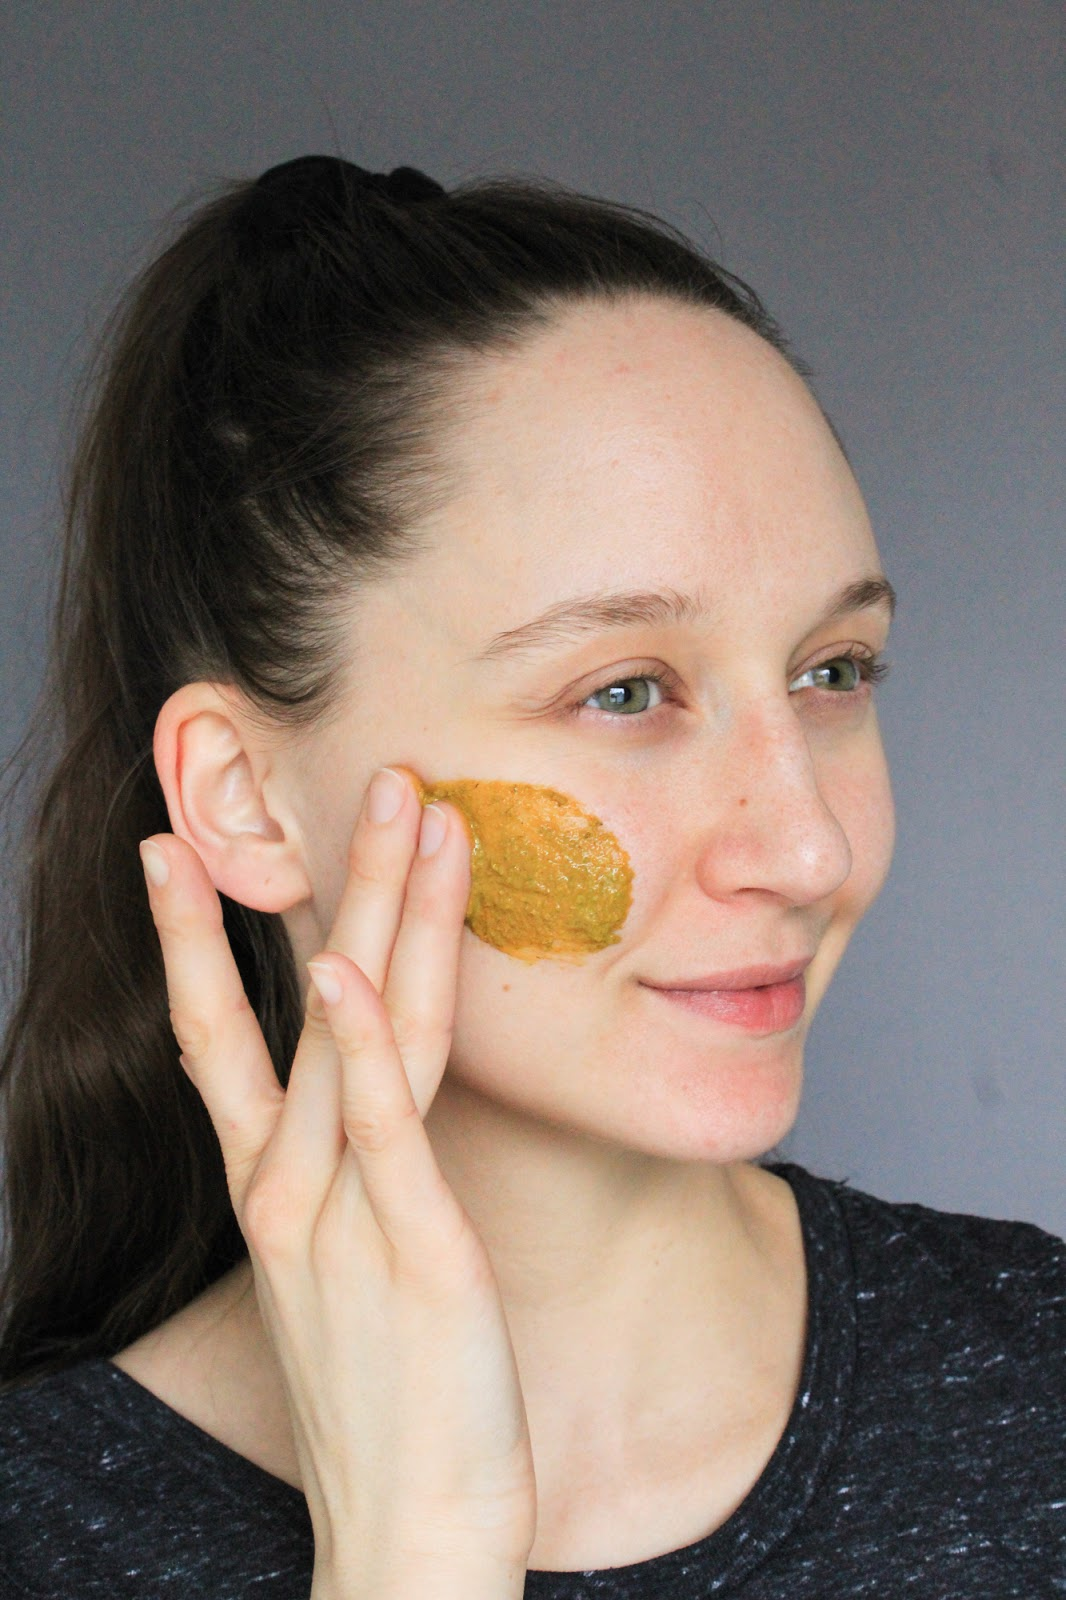 Earthwise Beauty Sungod Face Mask. Organic, natural, masking selfie, no makeup